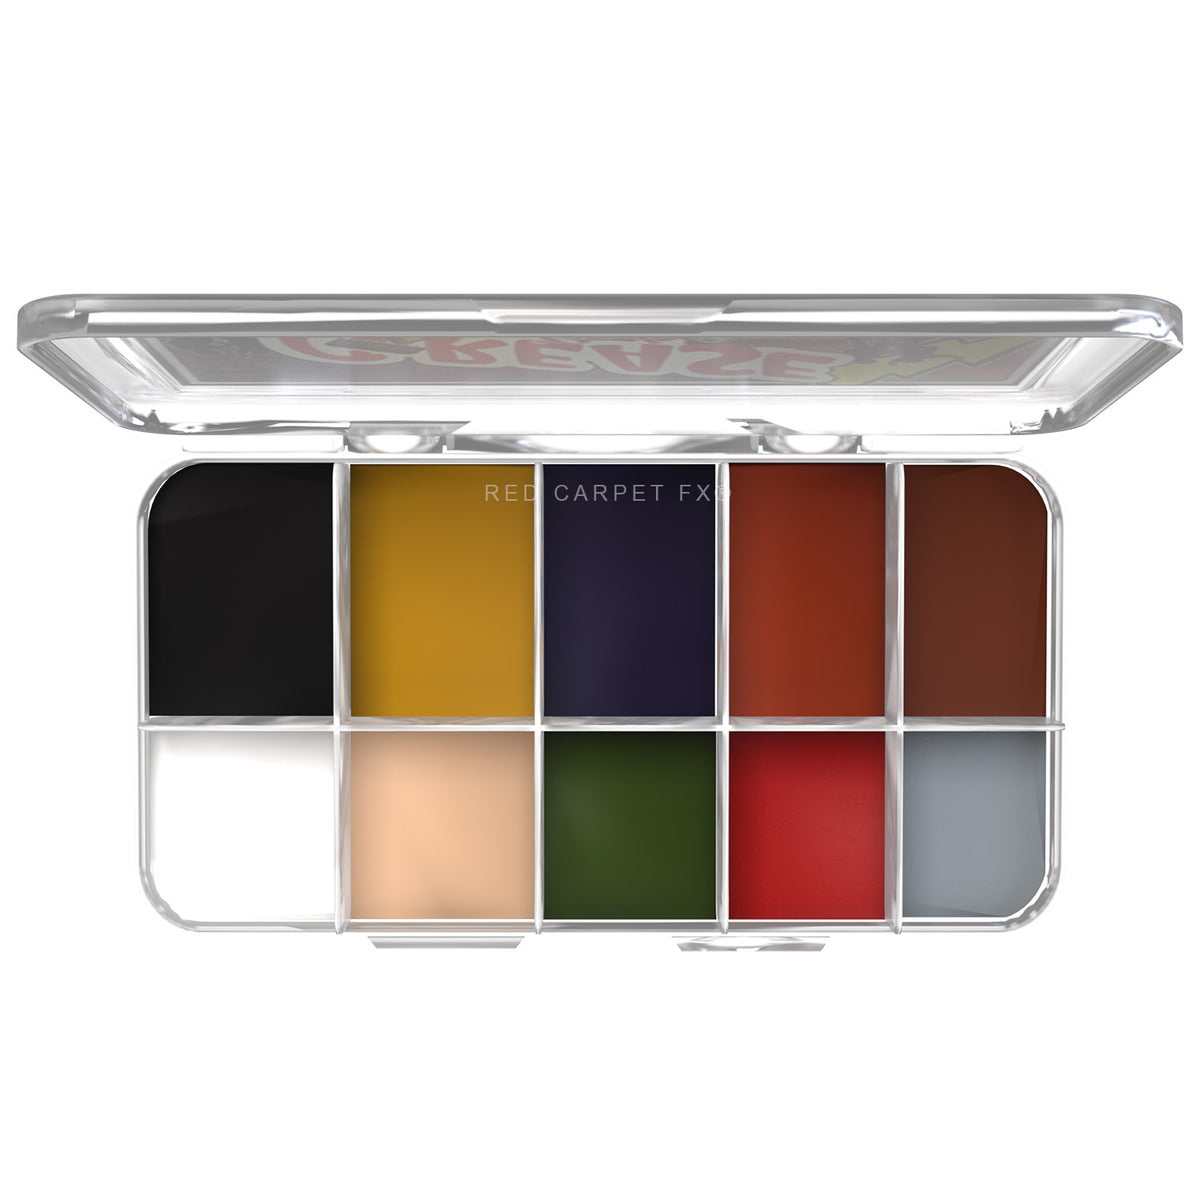 Dashbo The Ultimate Studio Grease Paint Palette - Grease Lightning - Red Carpet FX - Professional Makeup